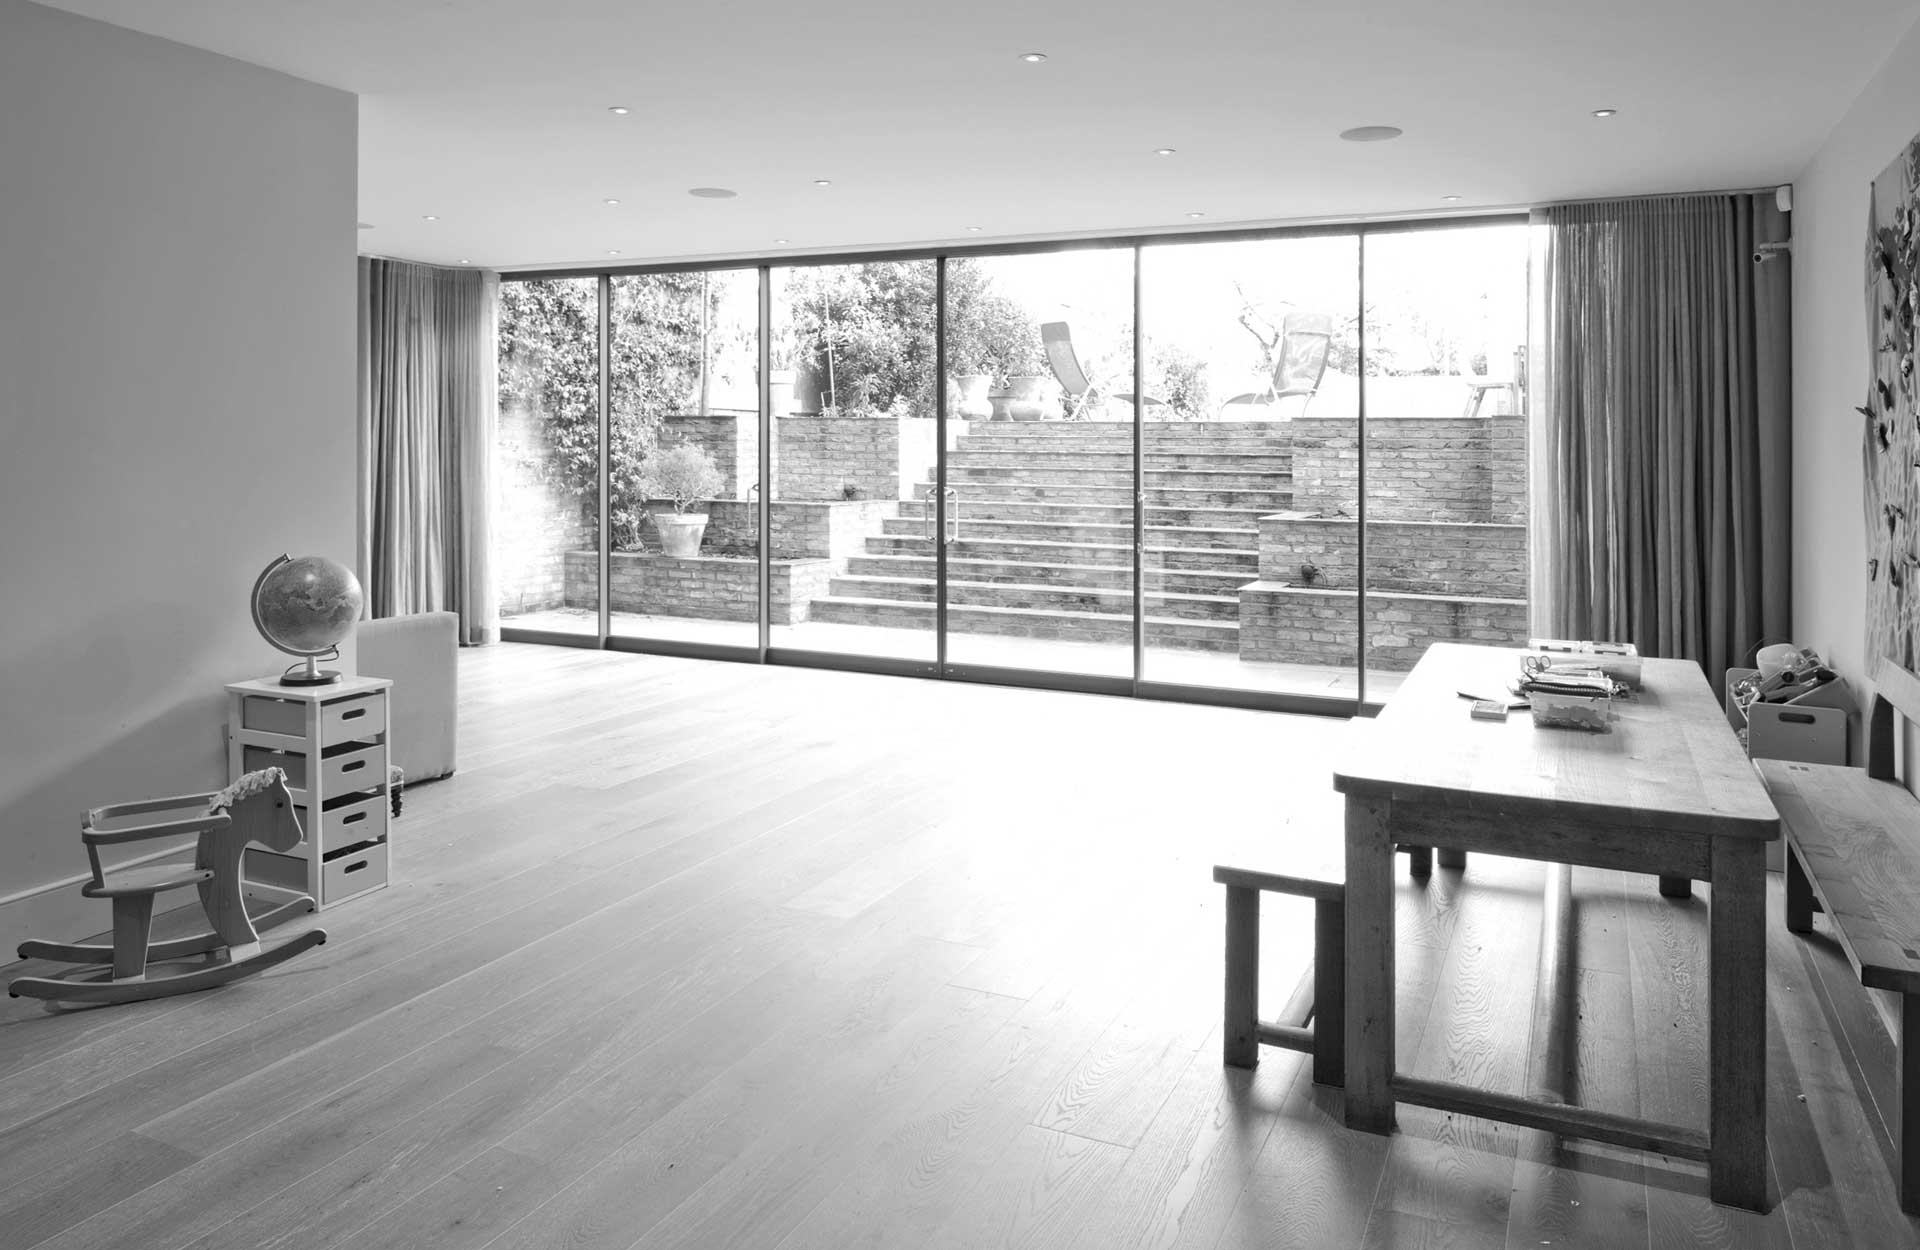 Bolingbroke Grove Wandsworth 2-Storey Extension, New Basement And Full Refurbishment 03